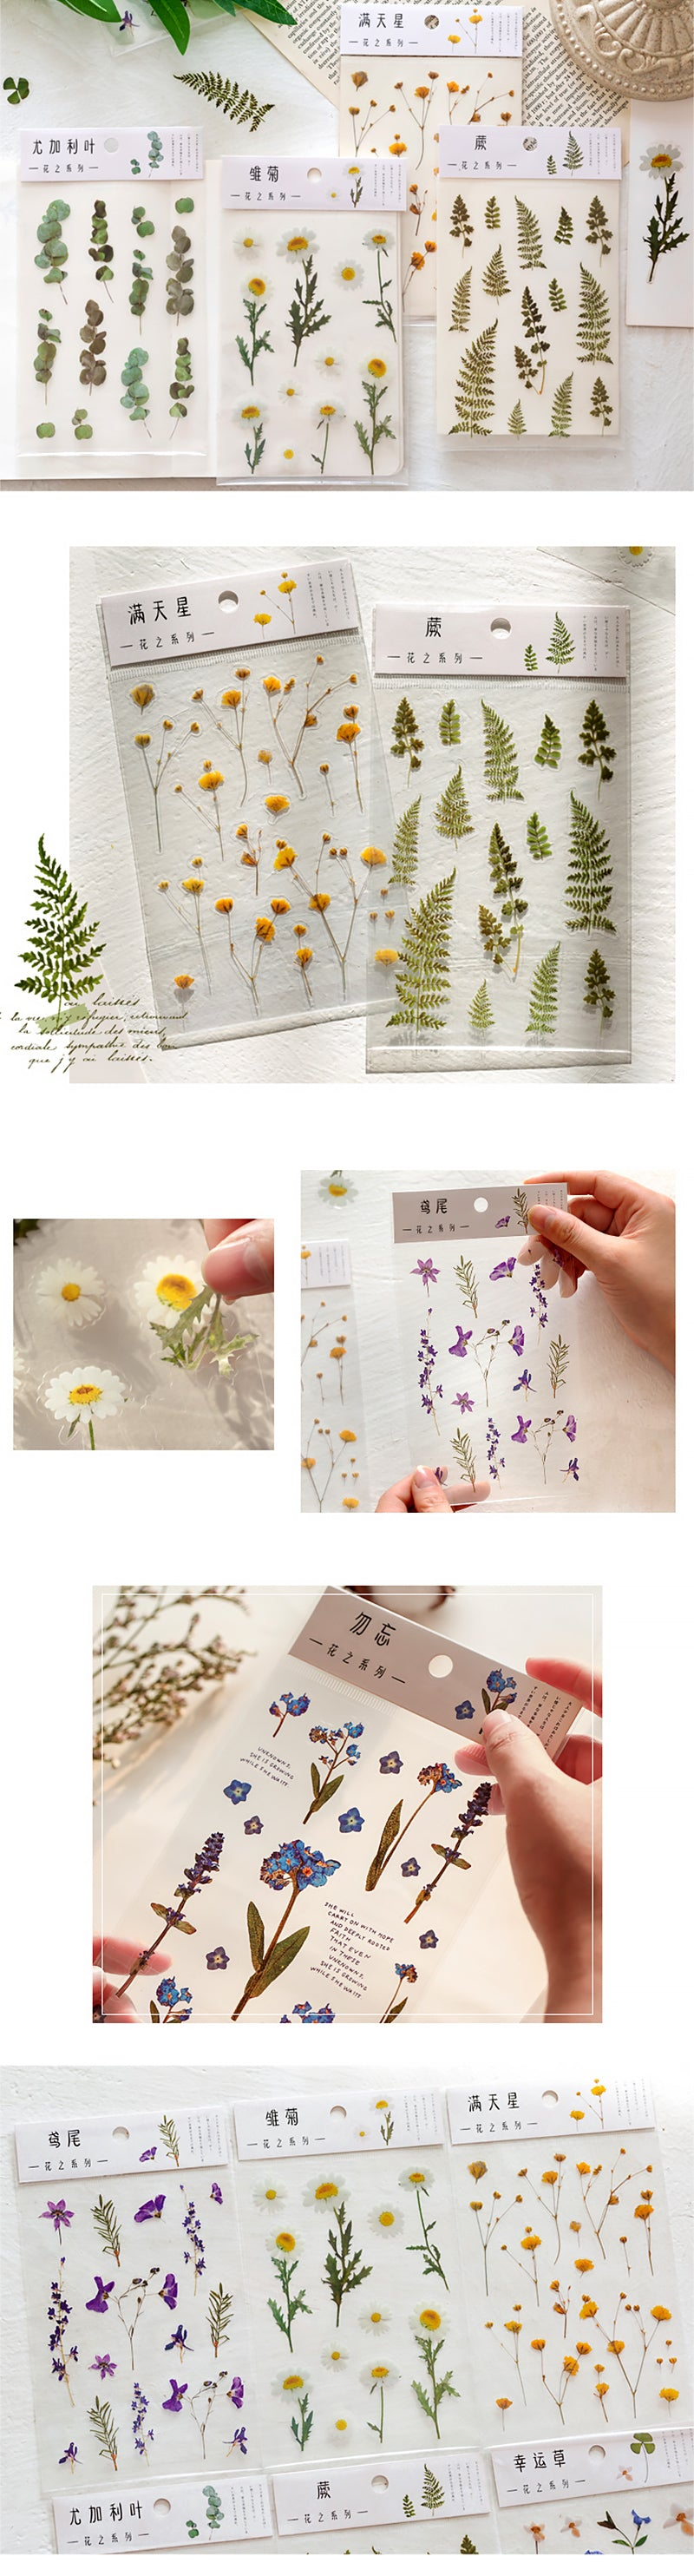 Translucent Botanical Plant Flower Stickers - Detail